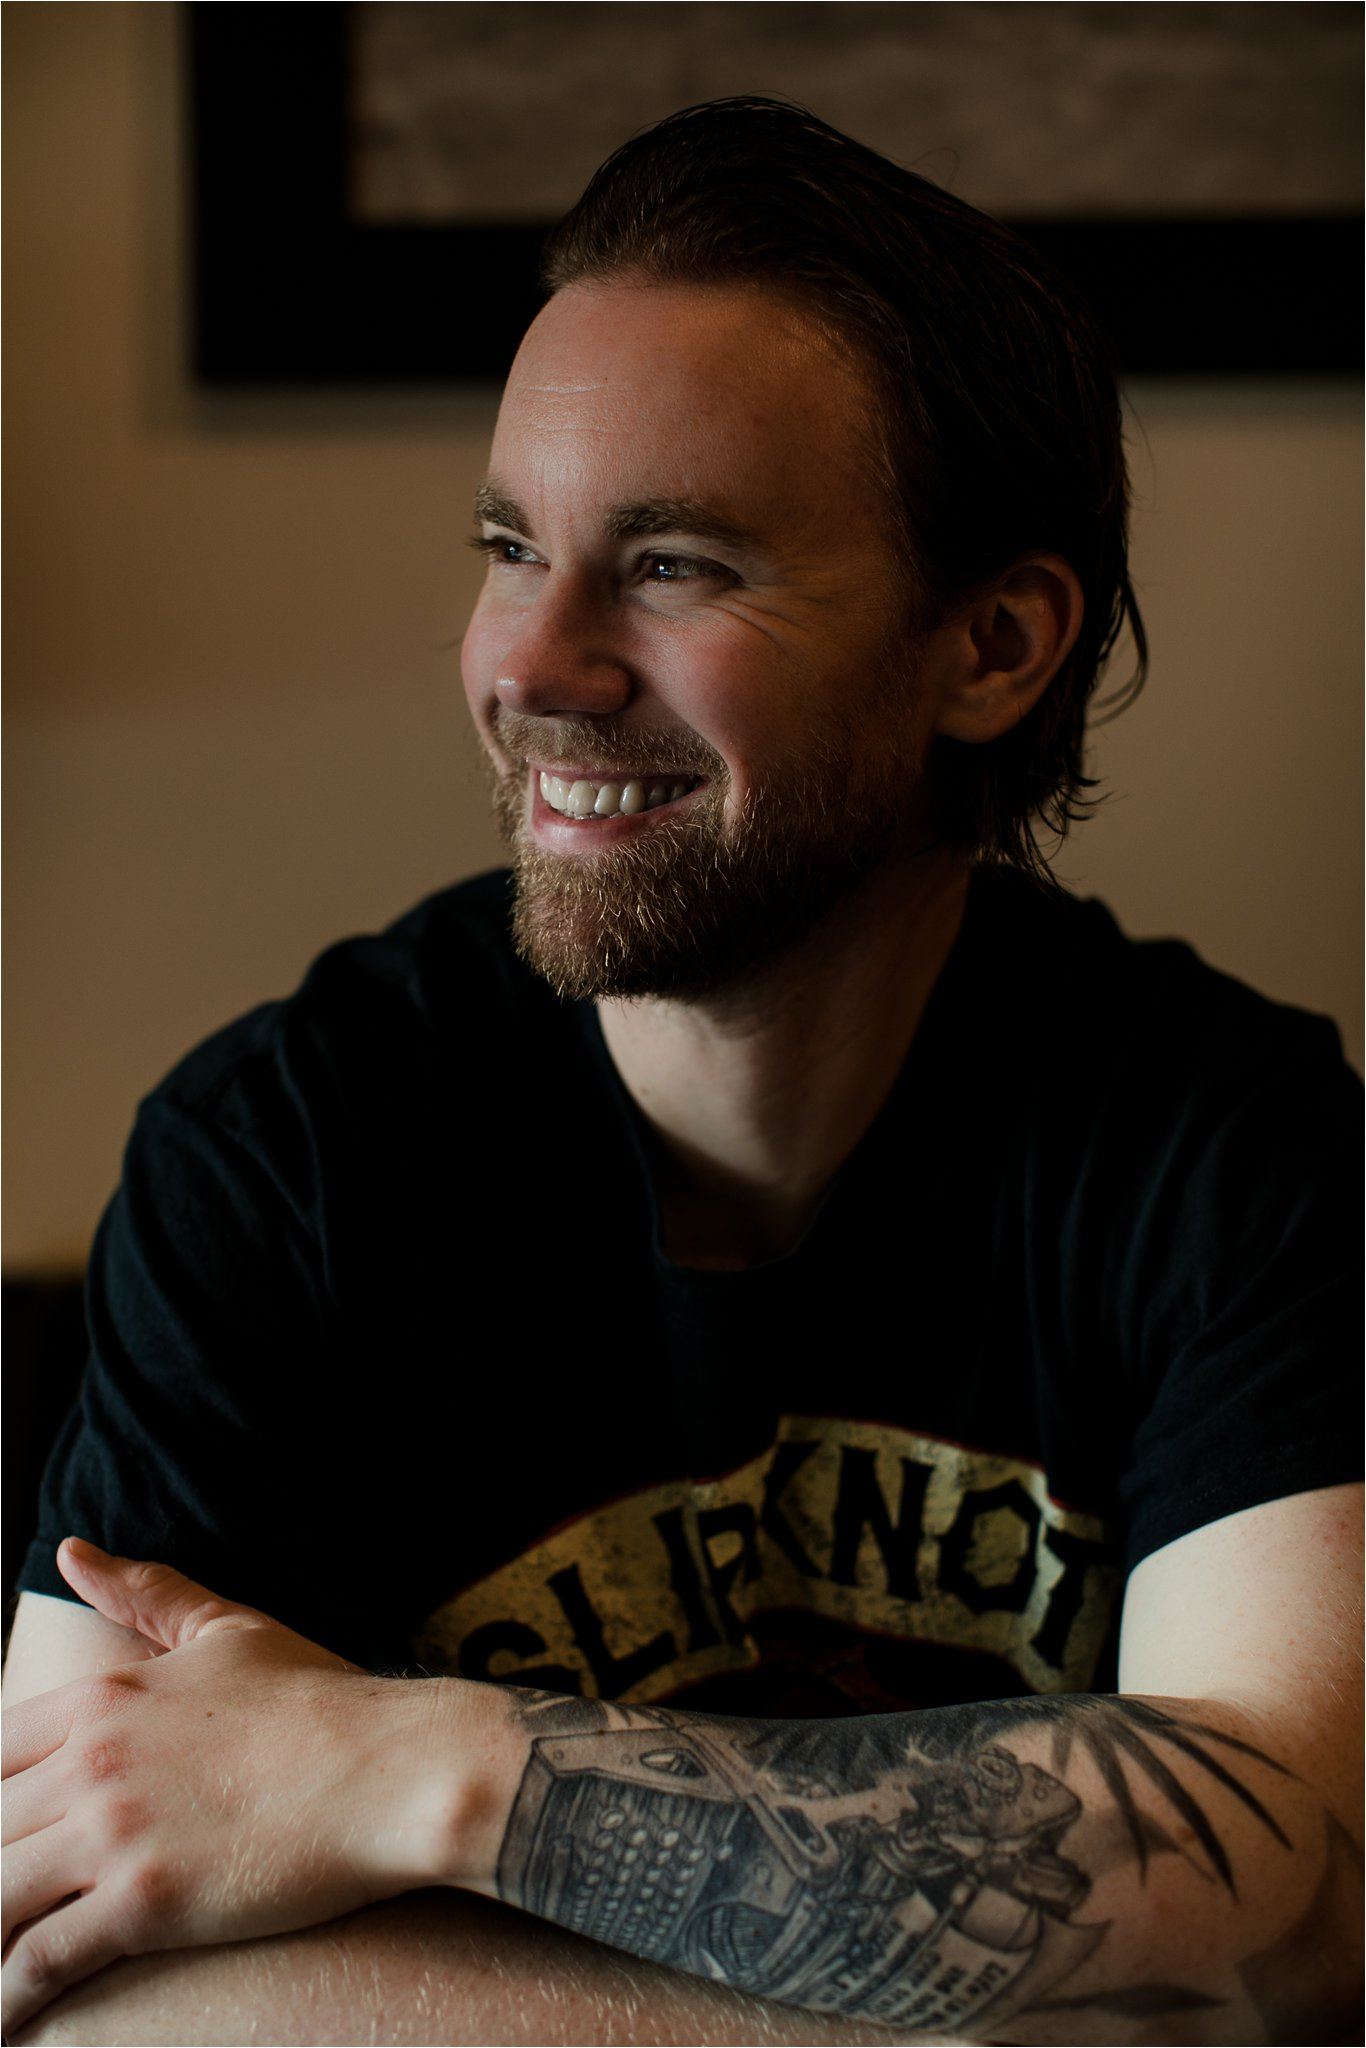 Adam Pottle is grinning in profile in this author headshot